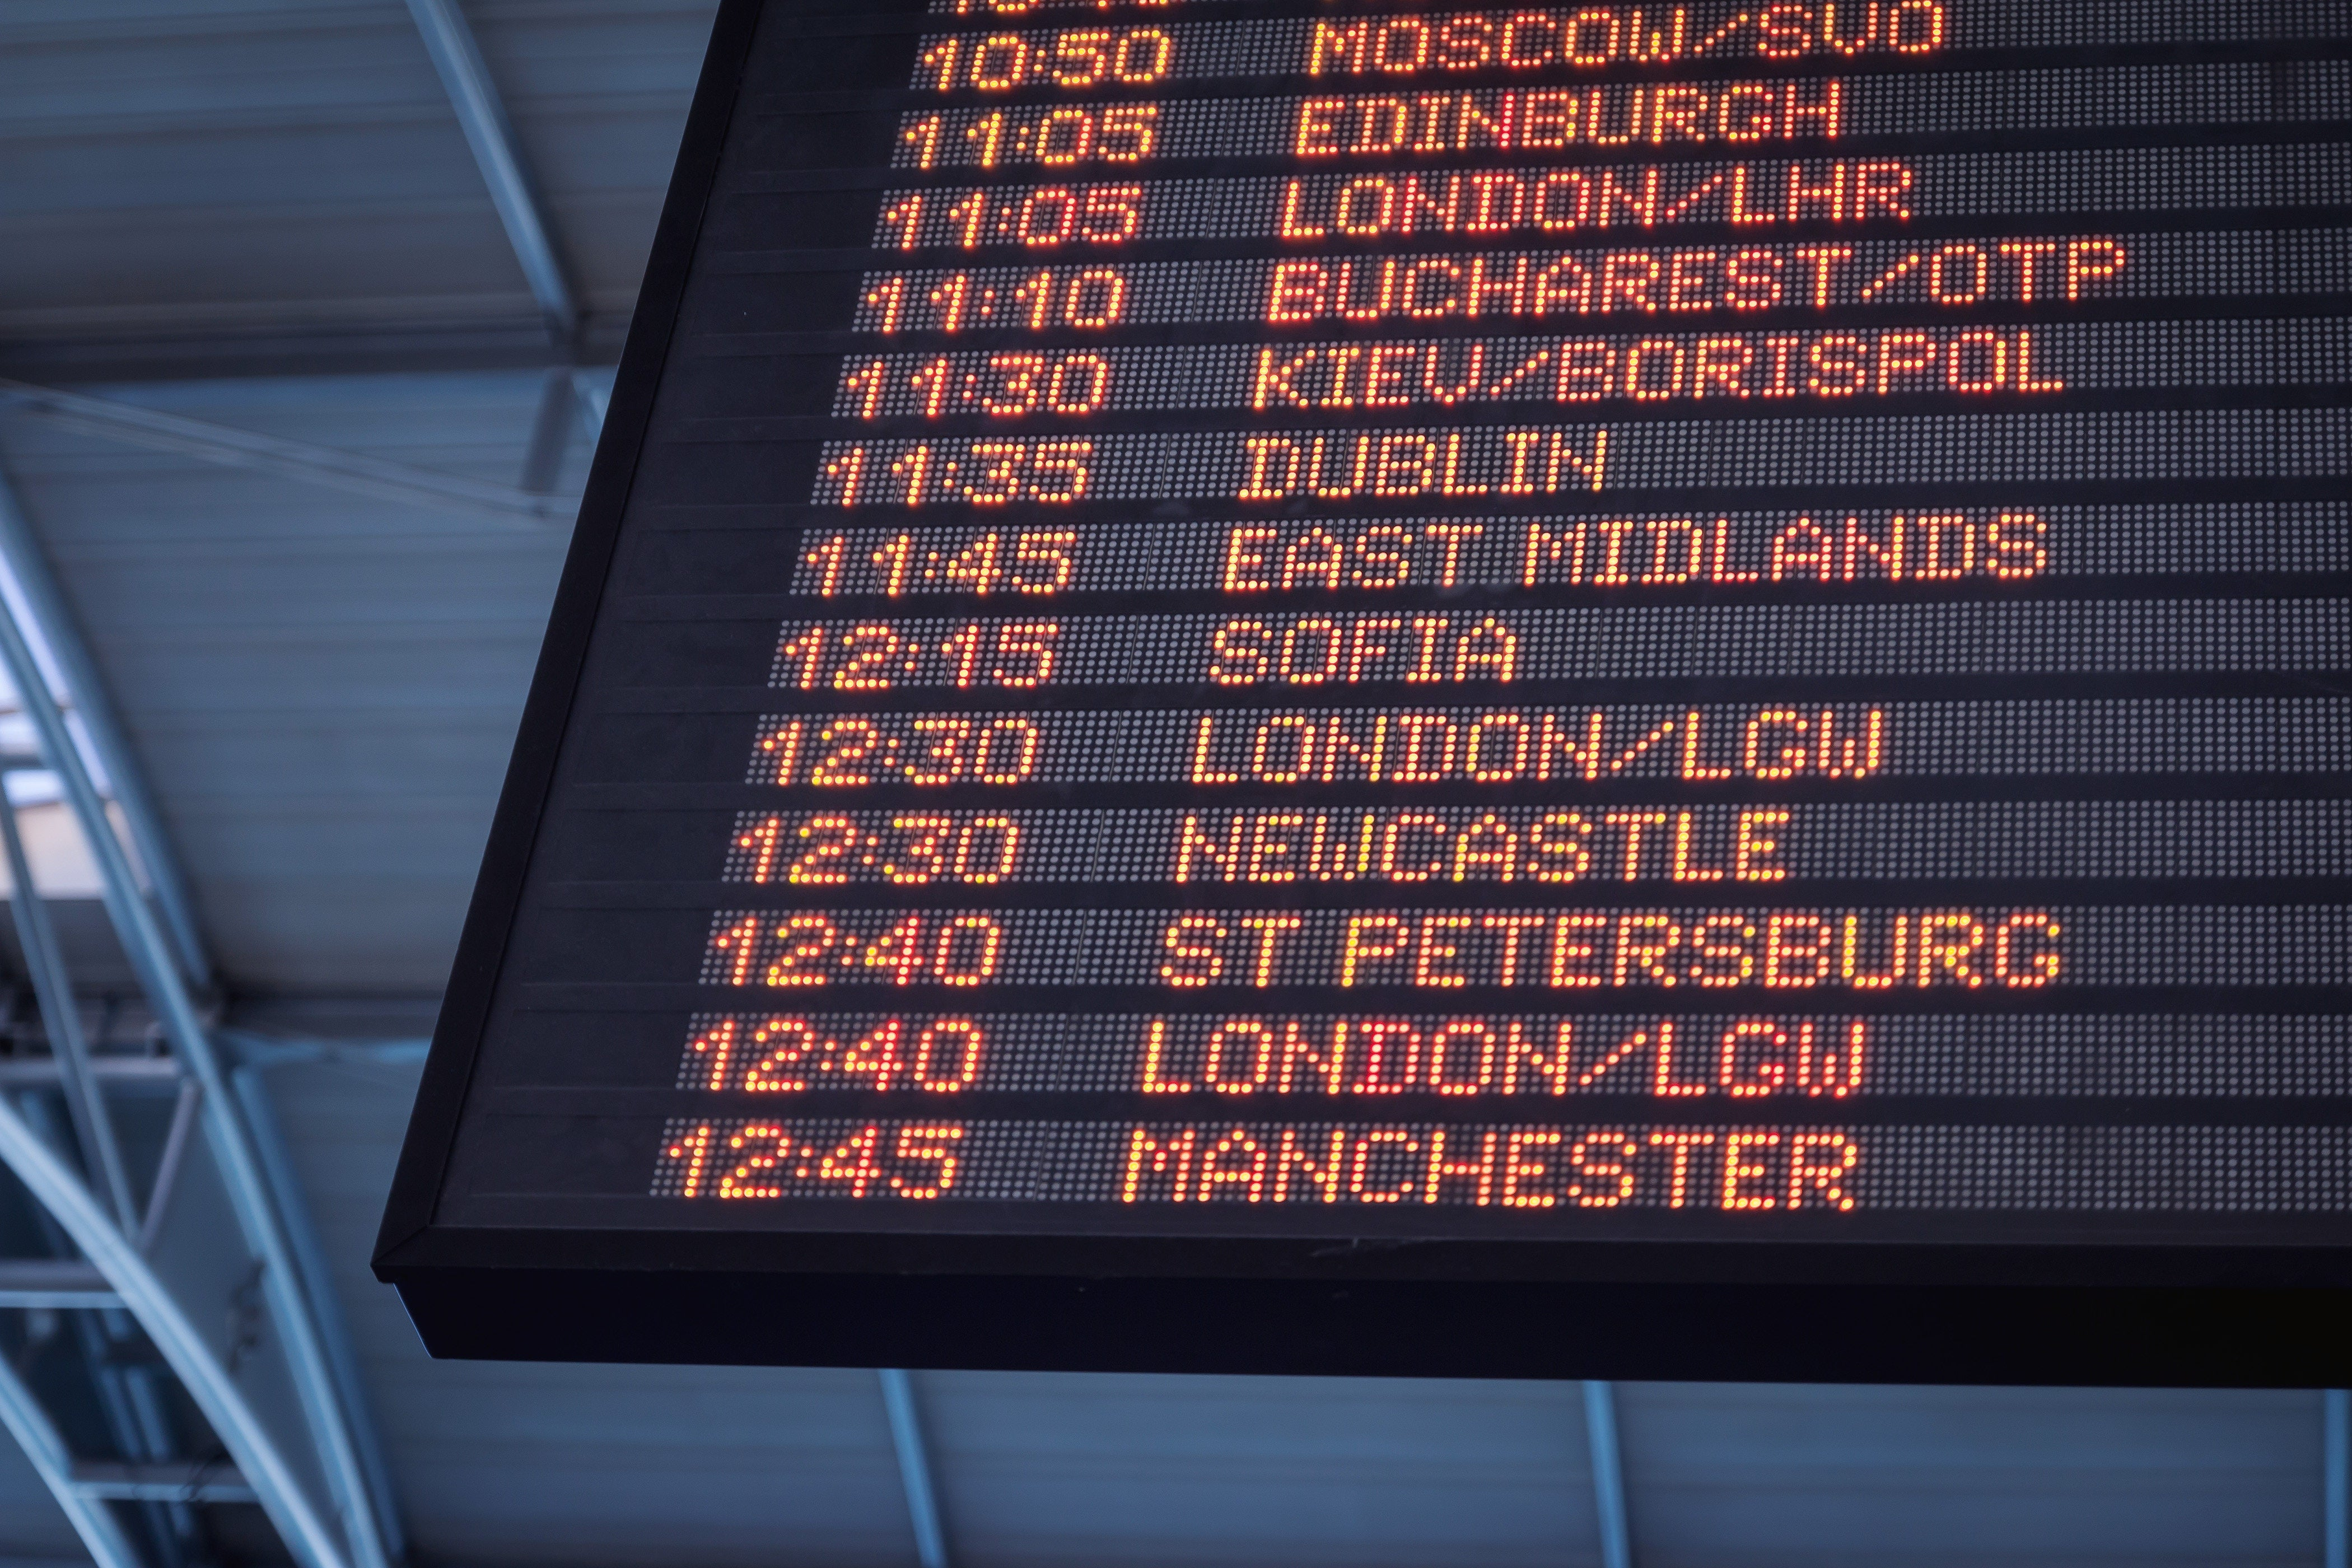 A departure board in an airport.